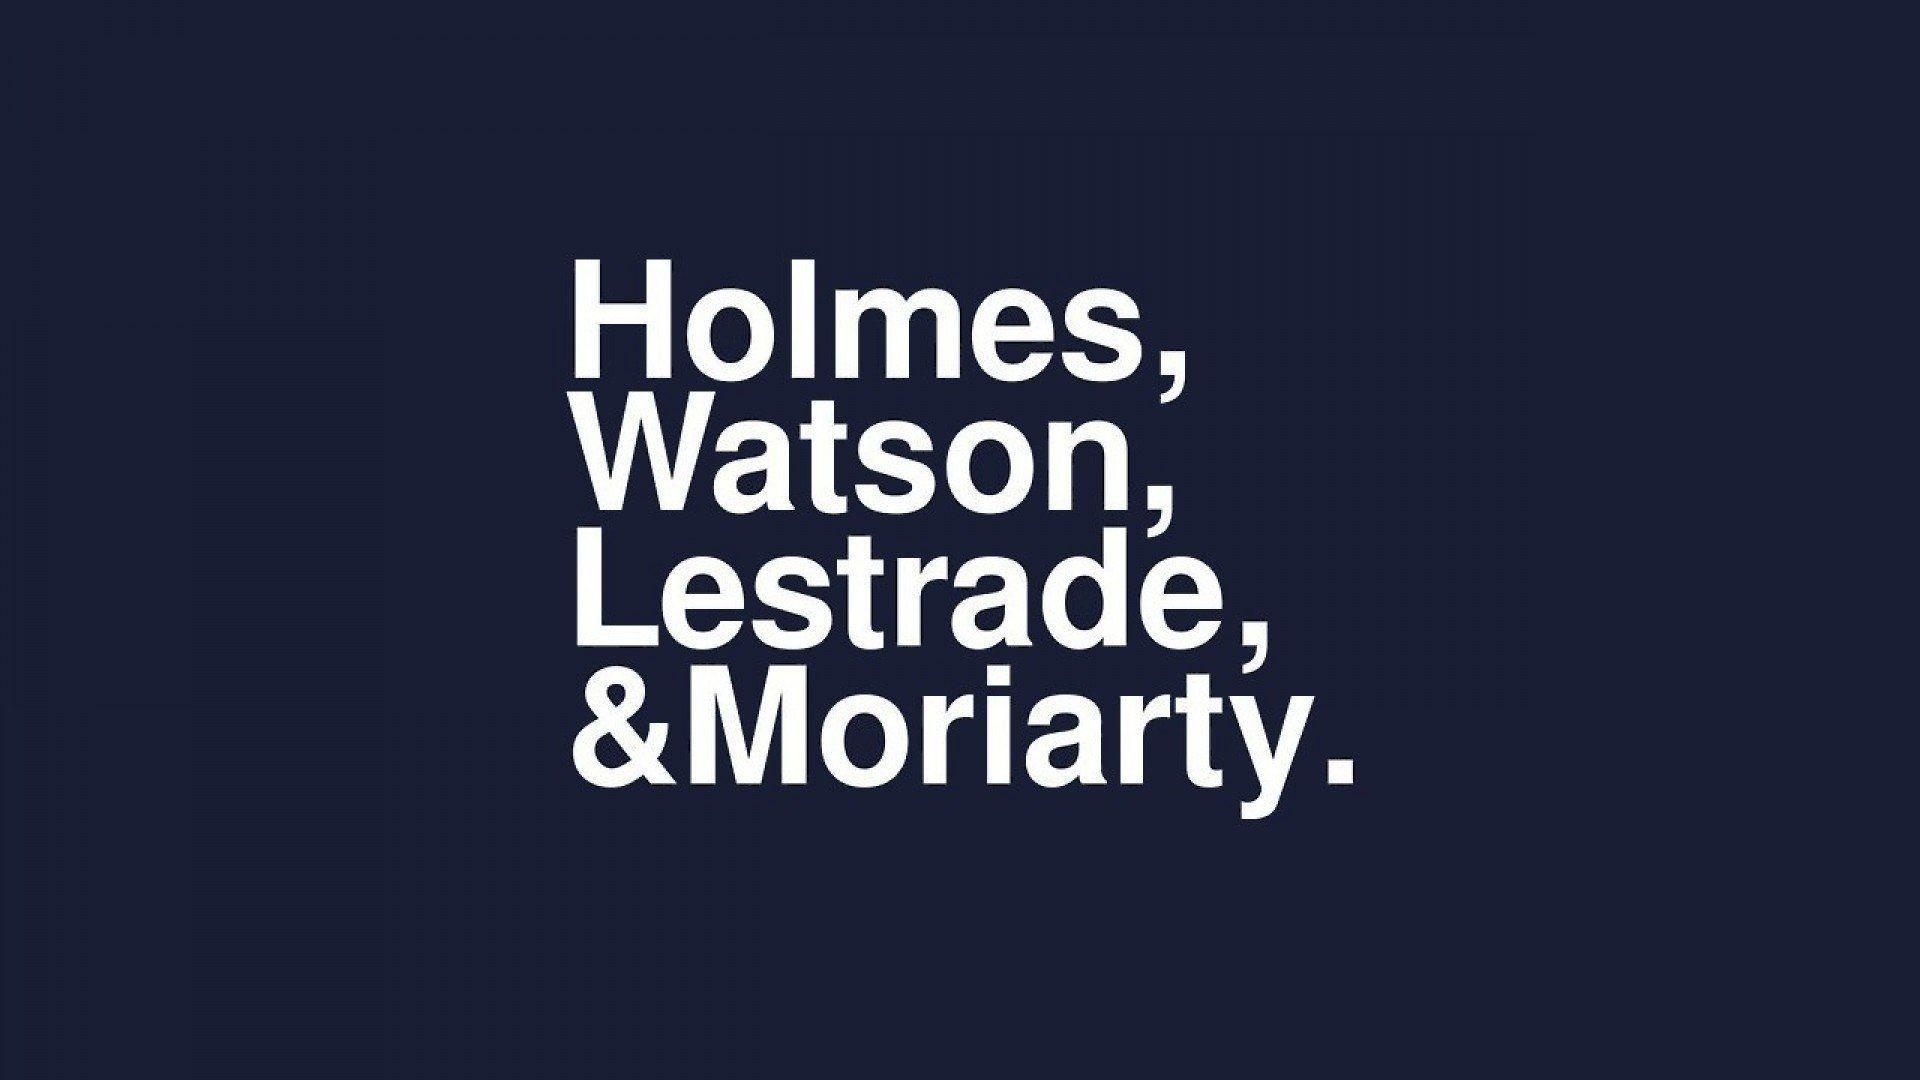 Sherlock Bbc Quotes Wallpaper Moriarty Wallpapers Wallpaper Cave